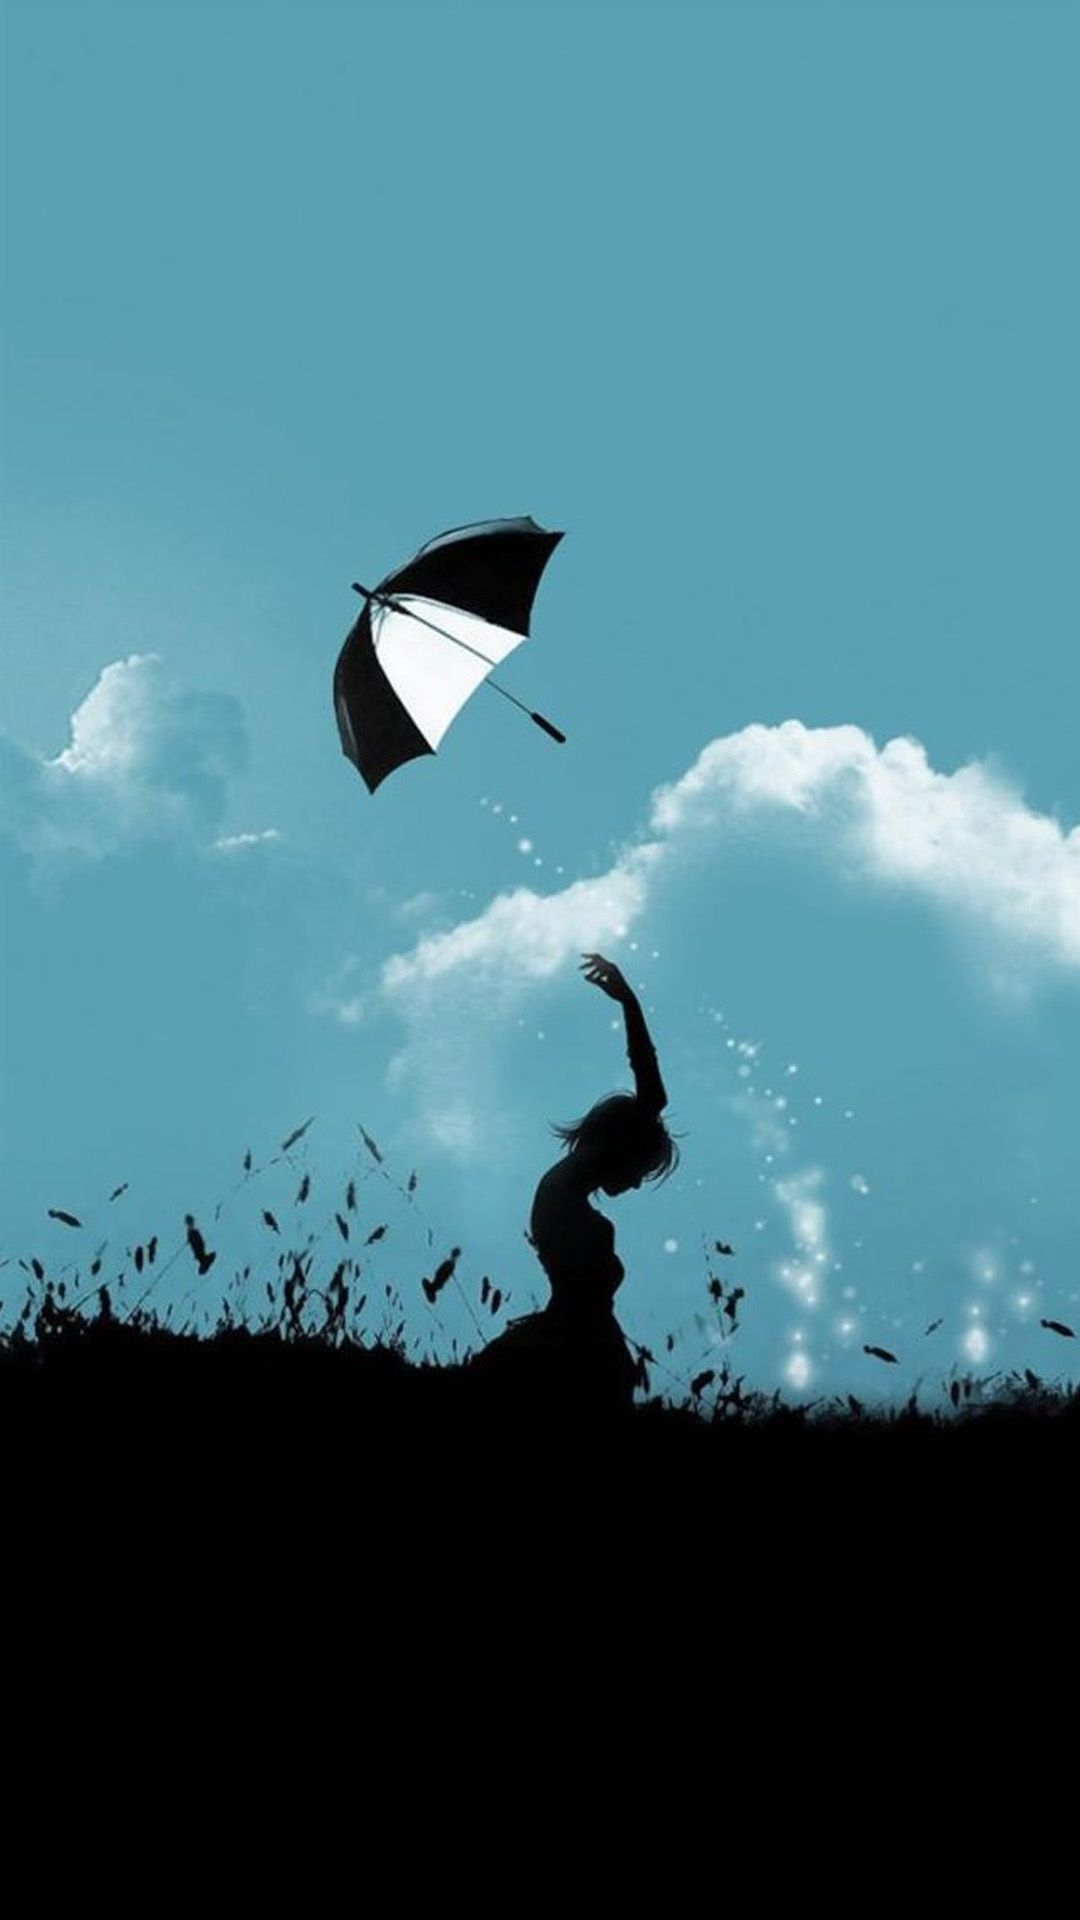 1080x1920 Hill Umbrella Throw At Cloudy Sky Aesthetic Art iPhone 8 Wallpaper ...